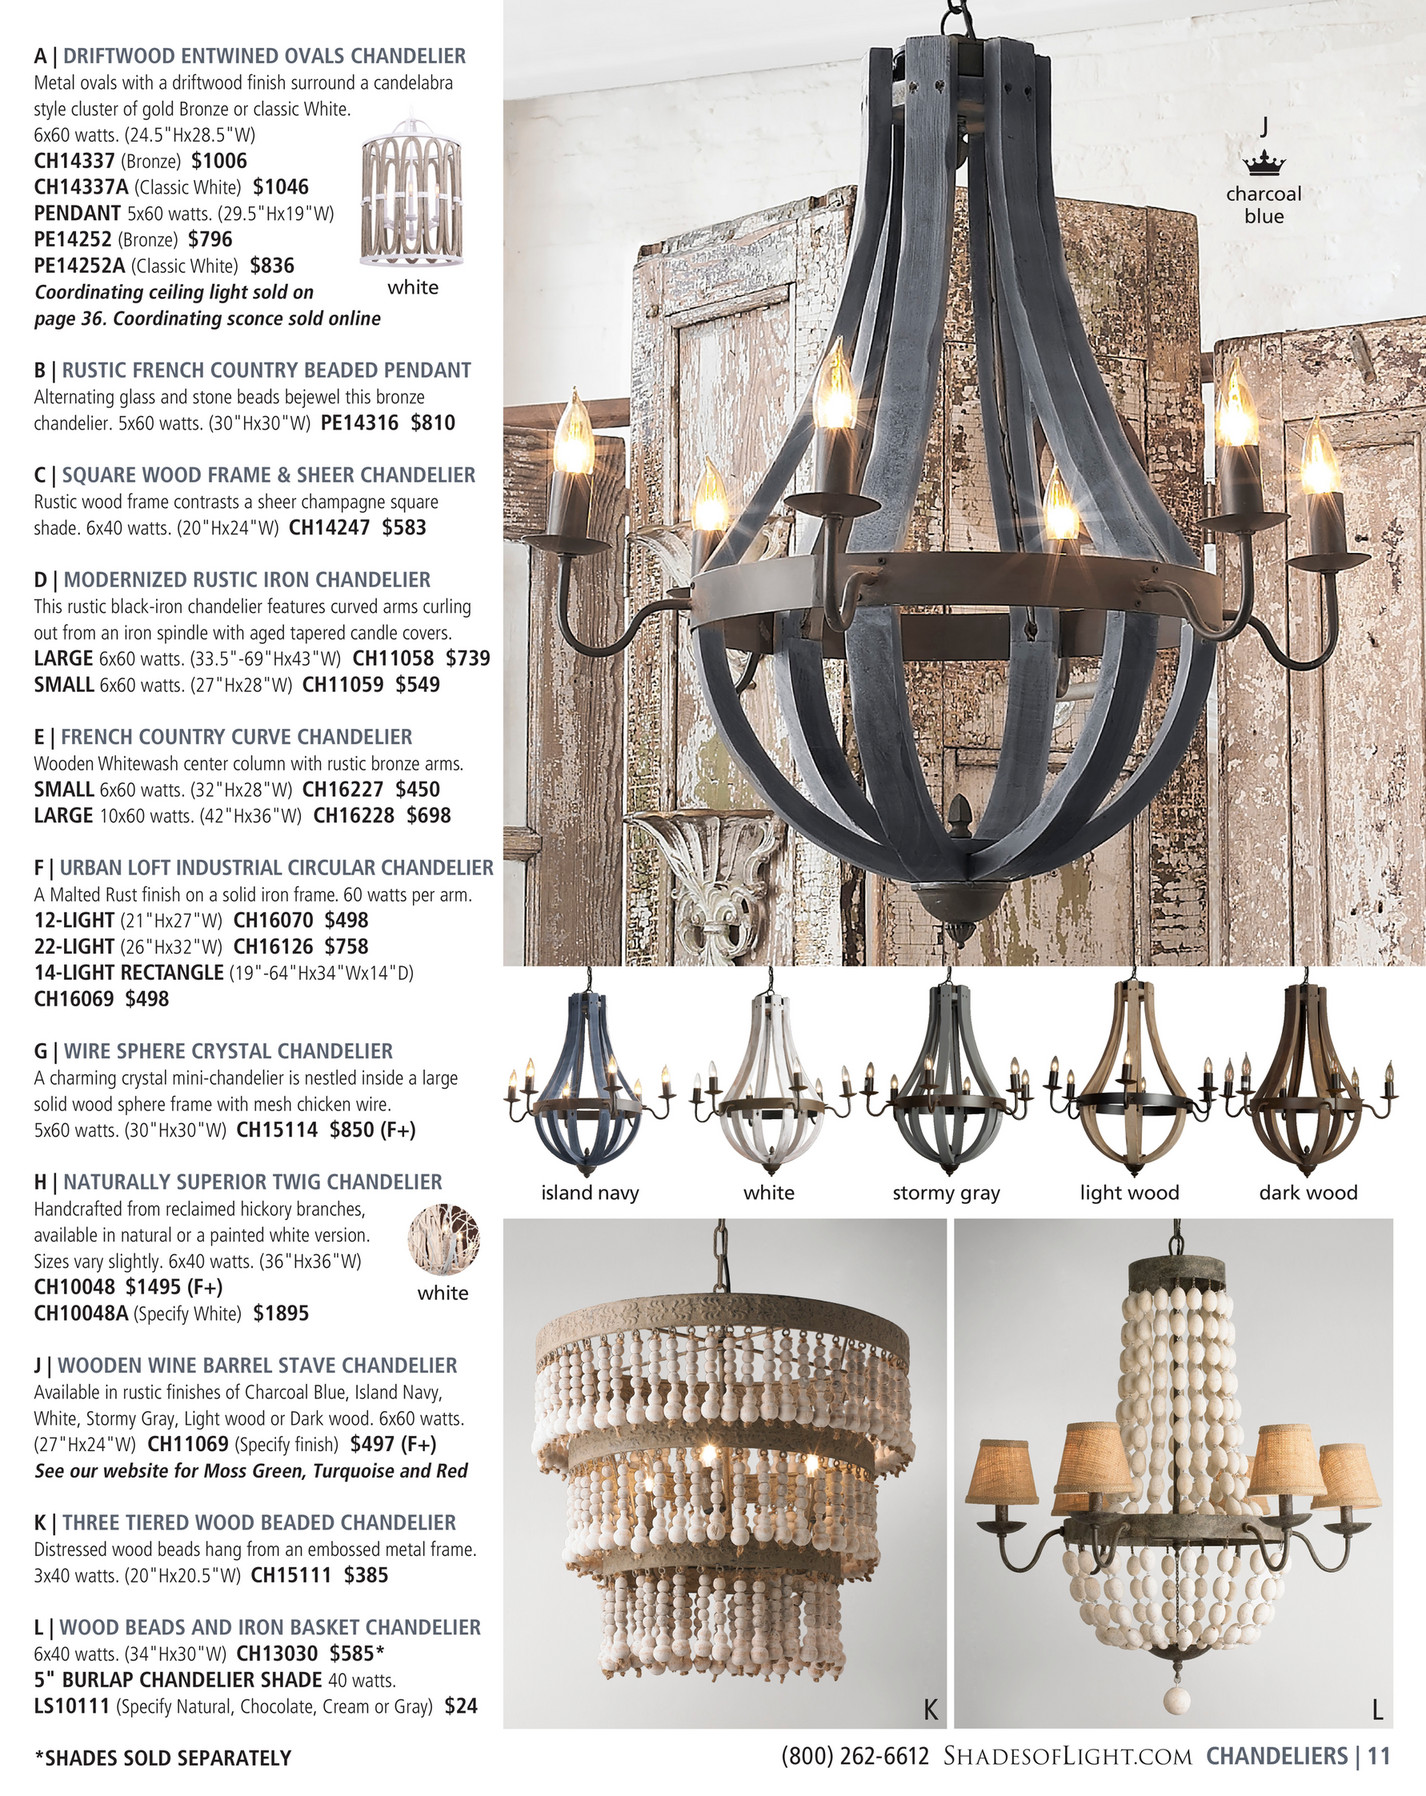 White washed wood sphere chandelier chandeliers by shades of light -  800 262 6612 Shadesoflight Com Chandeliers 11